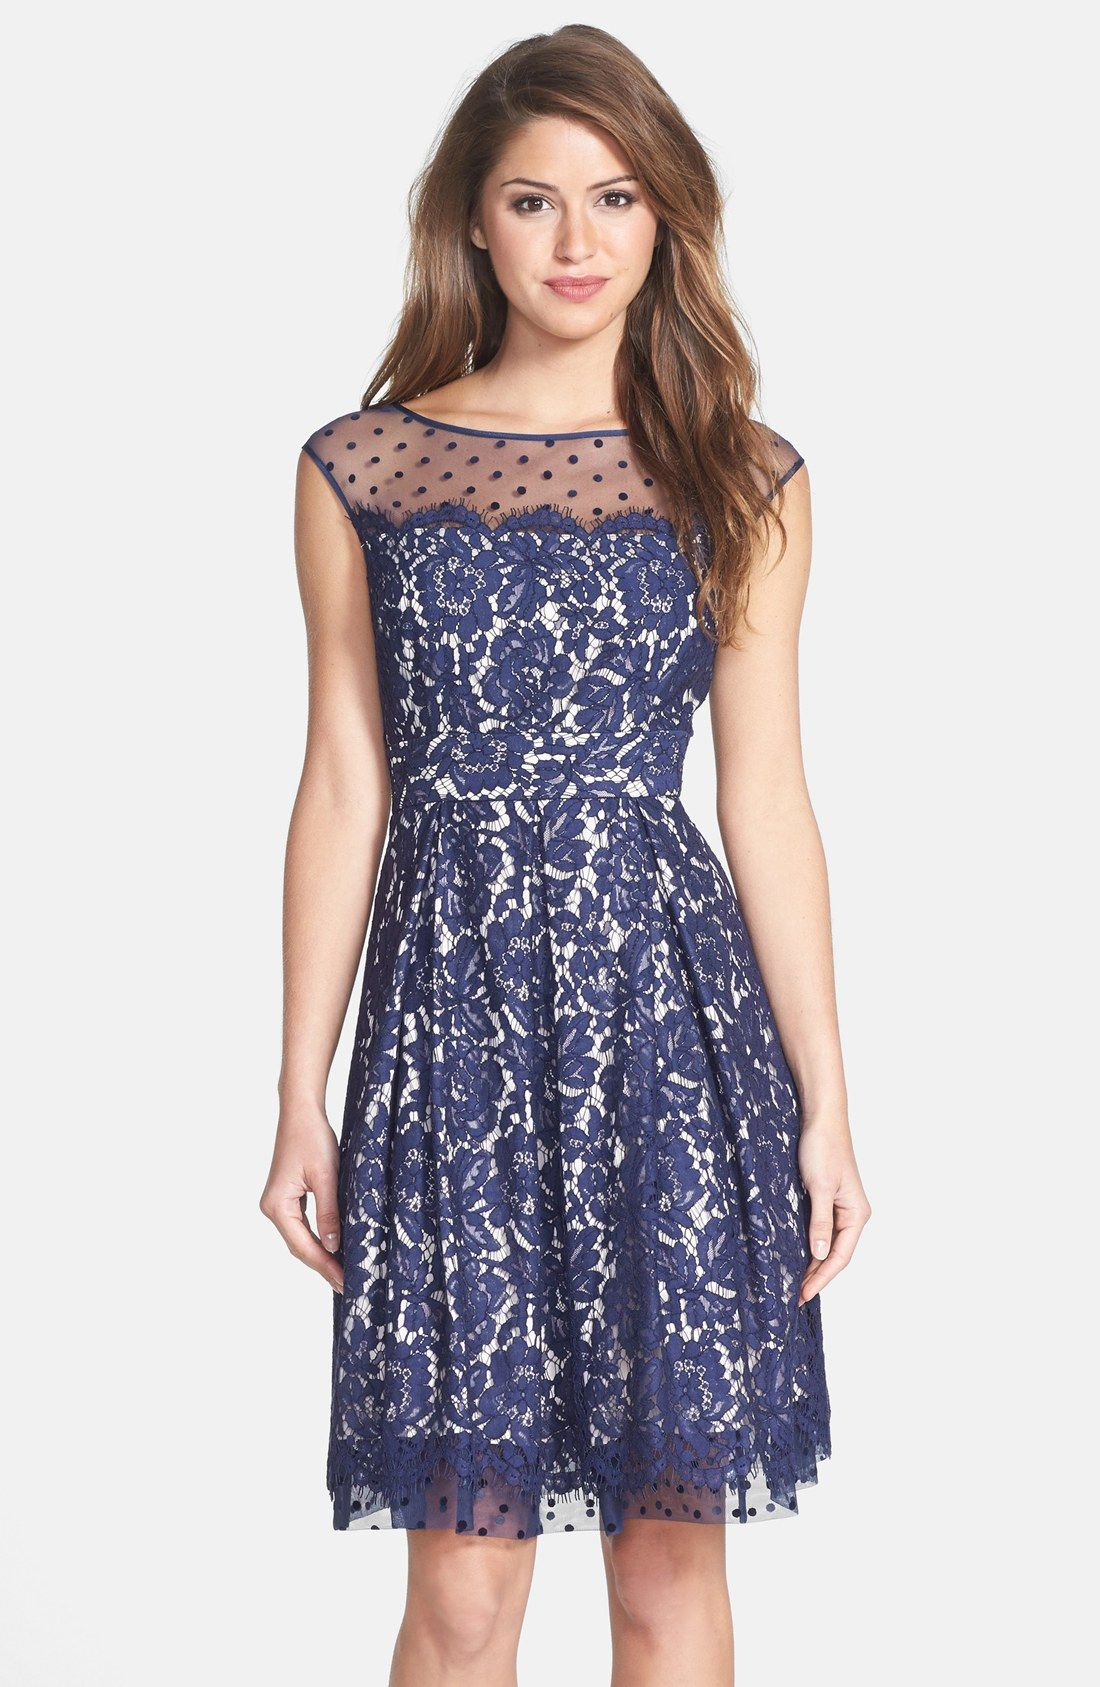 6e280fcd9af Free shipping and returns on Eliza J Illusion Yoke Lace Fit   Flare Dress  at Nordstrom.com. A ladylike covering of dotted mesh and floral  eyelash-fringe ...